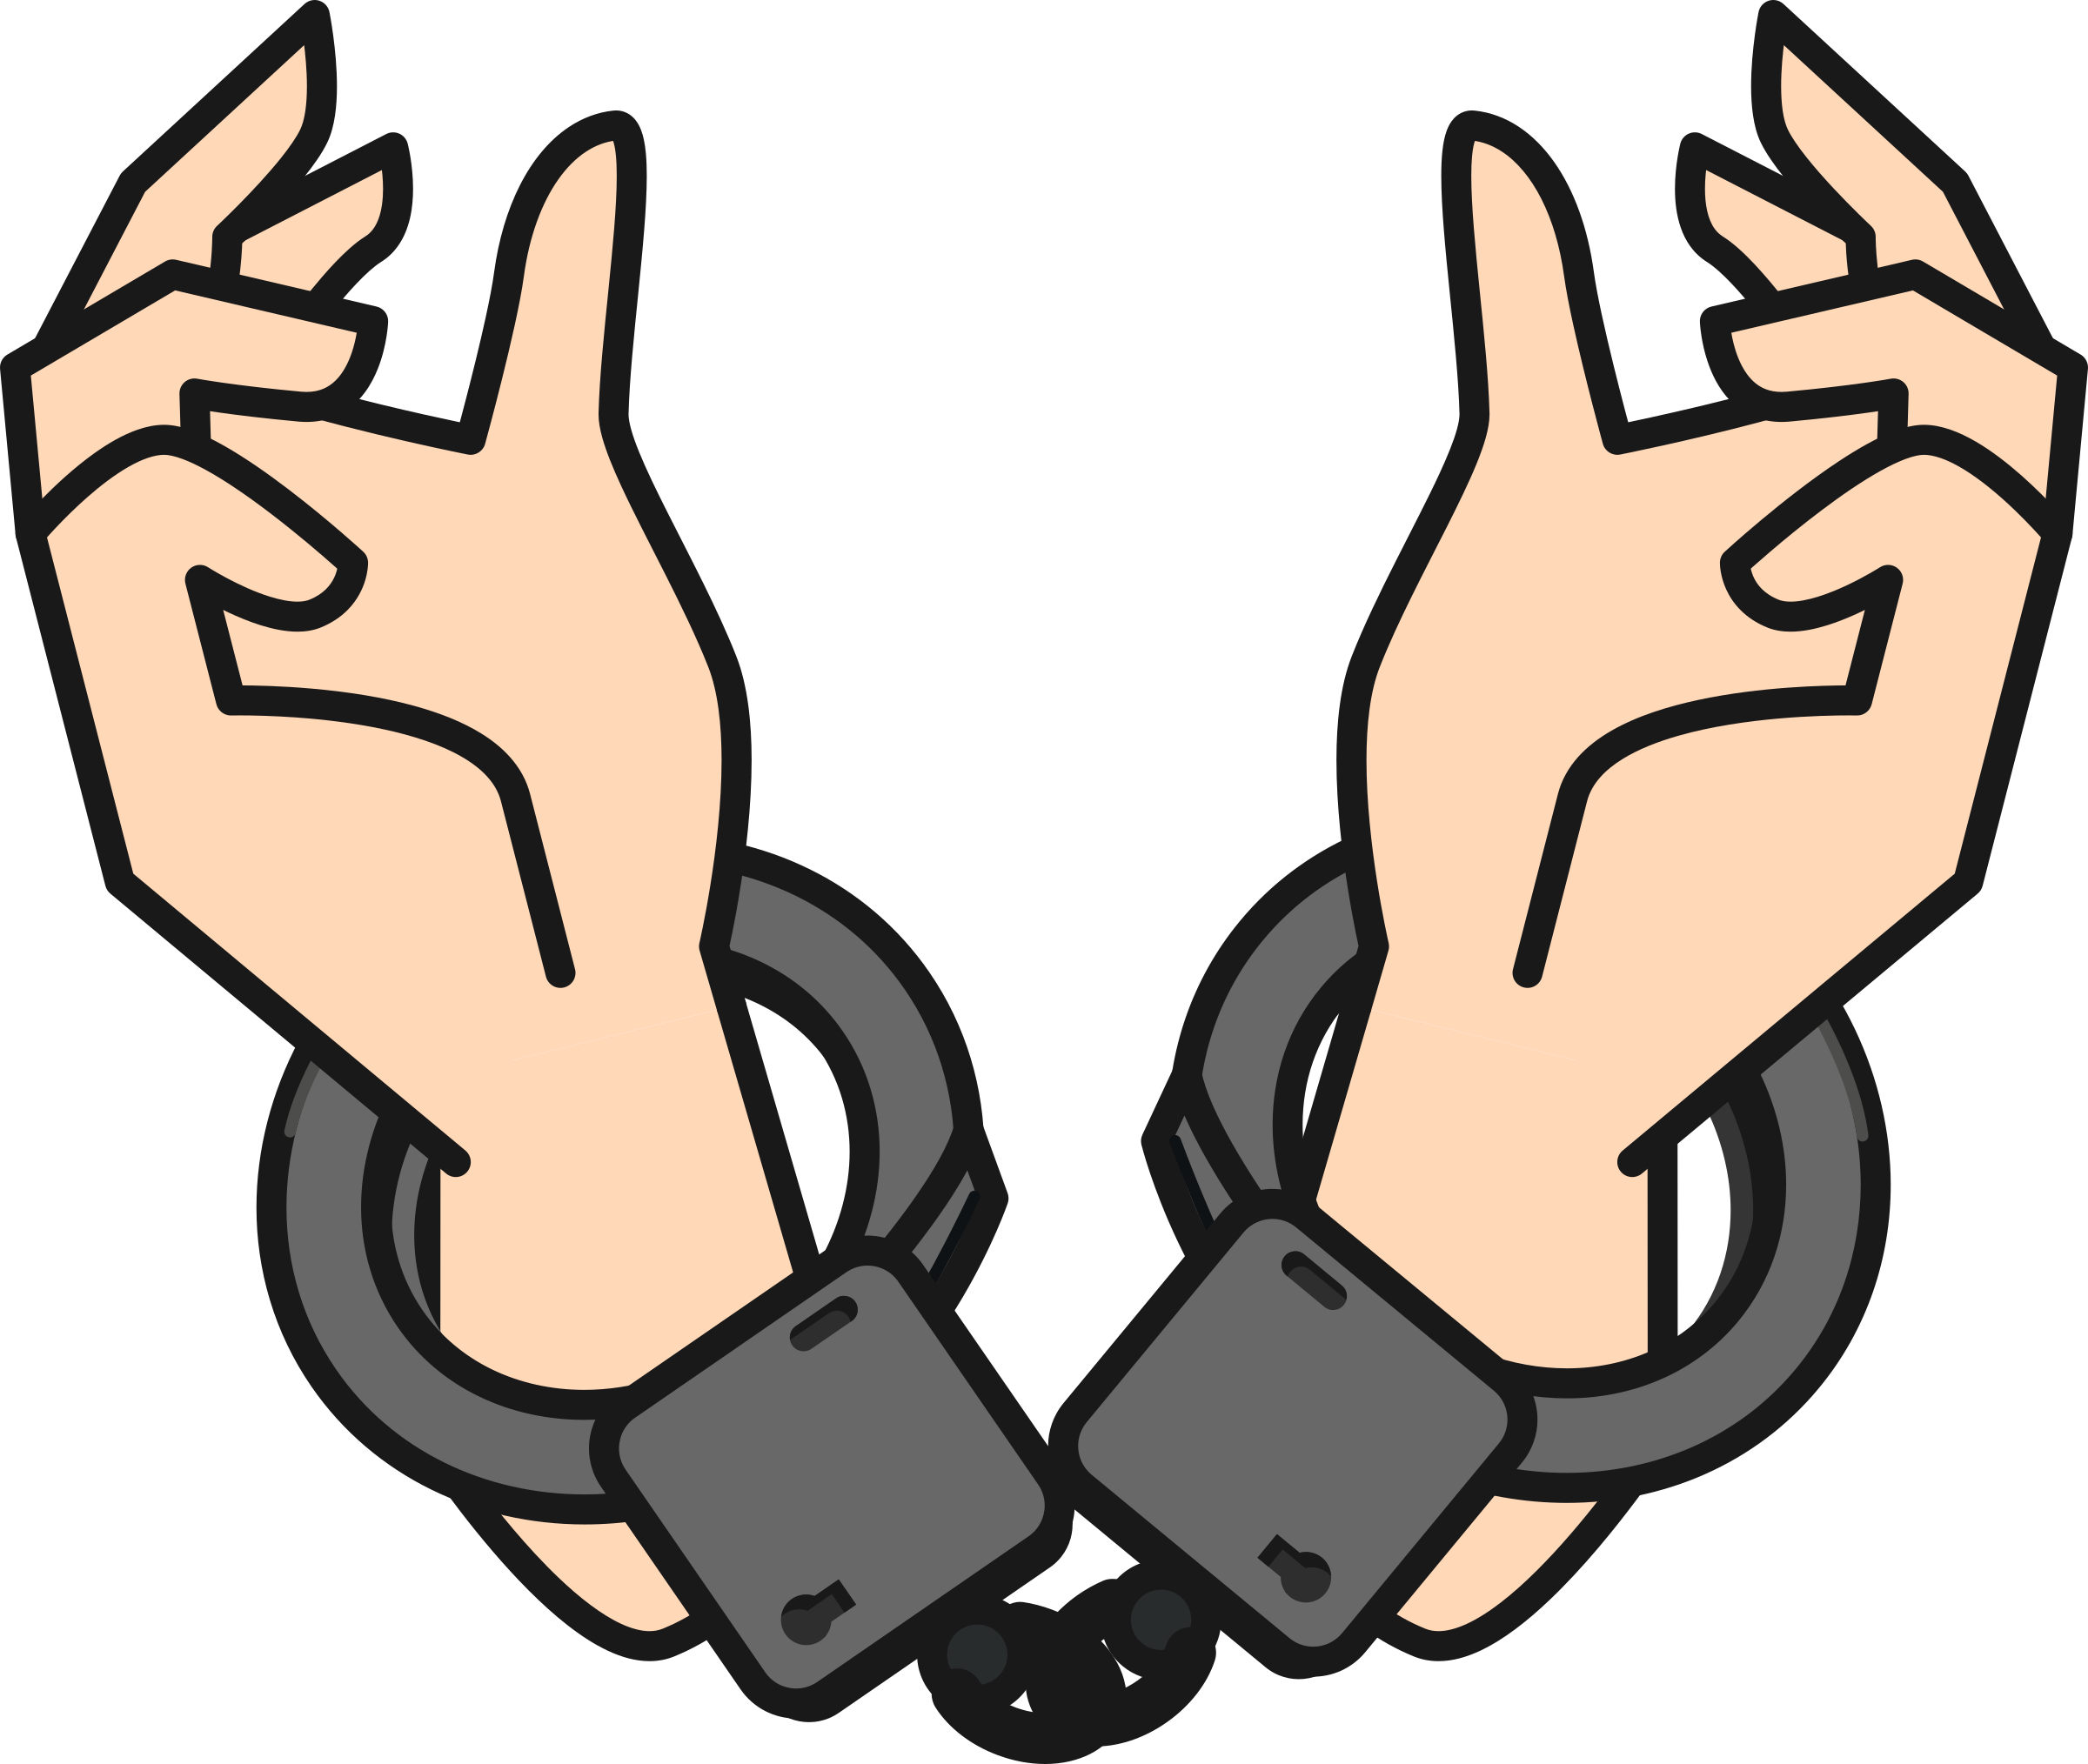 handcuffs clipart cuffed hand